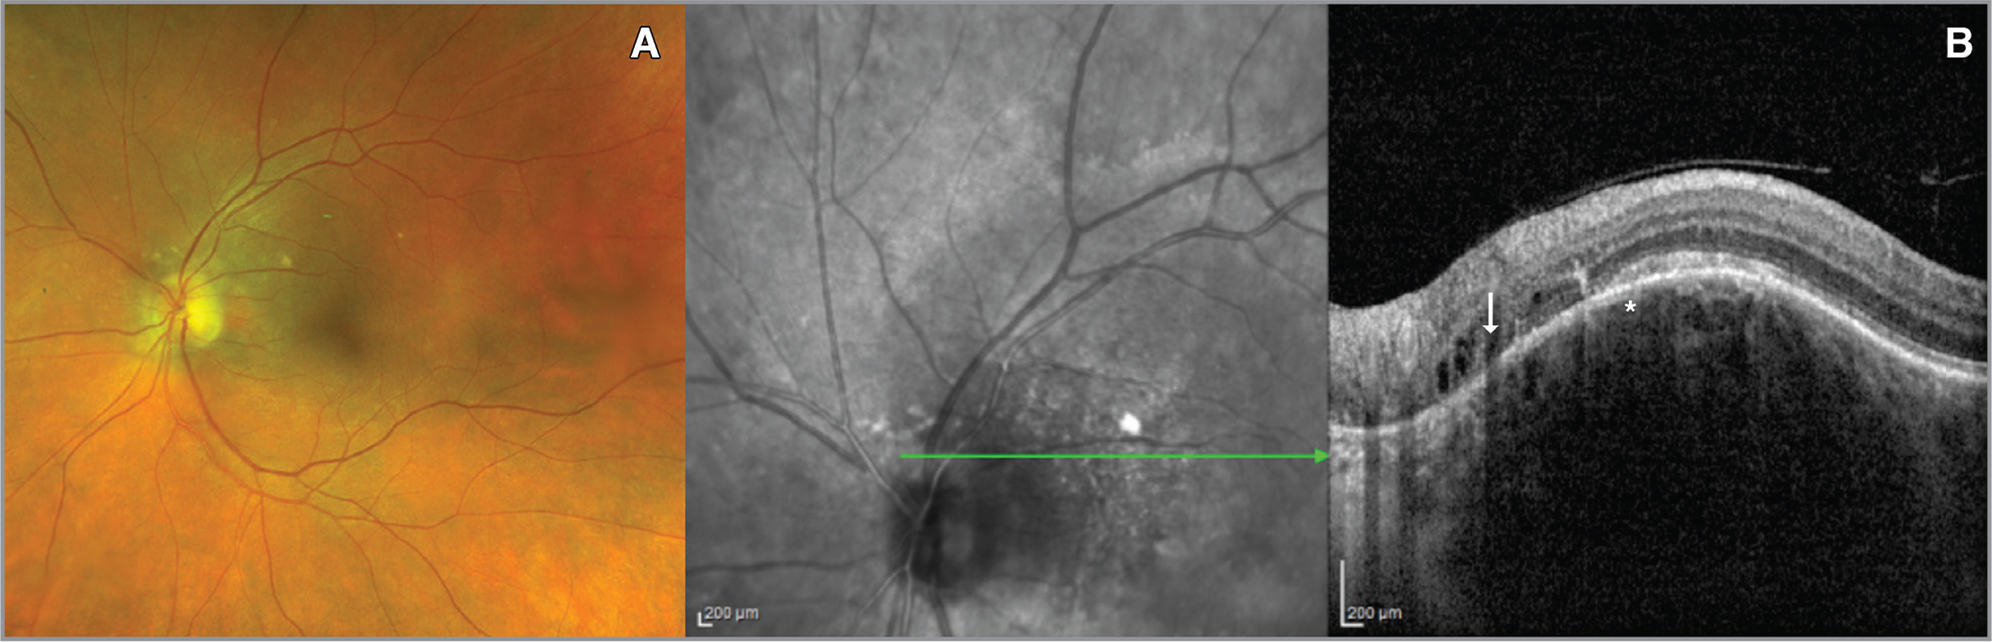 (A) A choroidal hemangioma along the superotemporal arcade. (B) On enhanced depth imaging optical coherence tomography, normal-looking honeycomb-like choriocapillaris (asterisk) with abnormalities in the outer photoreceptor and plexiform layers (arrow).